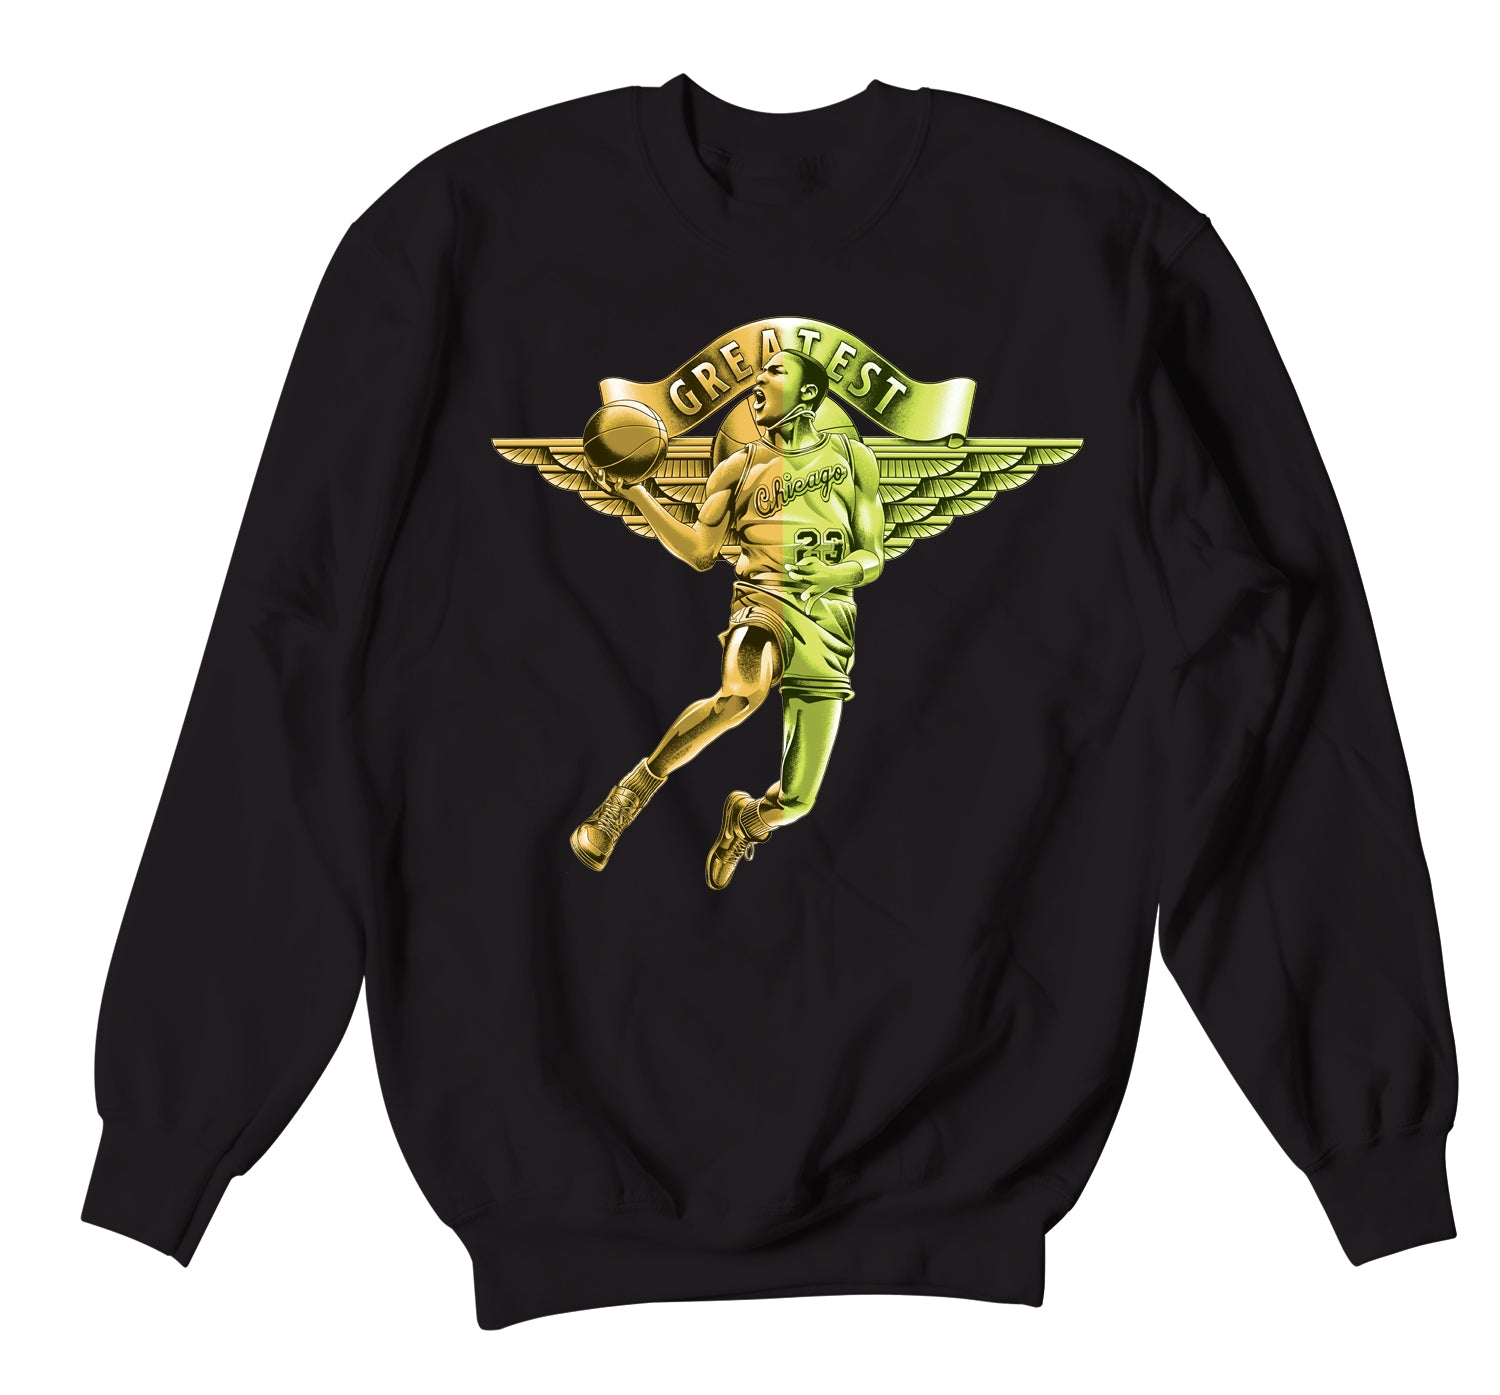 Crewnecks made to match the Jordan 1 volt gold sneakers